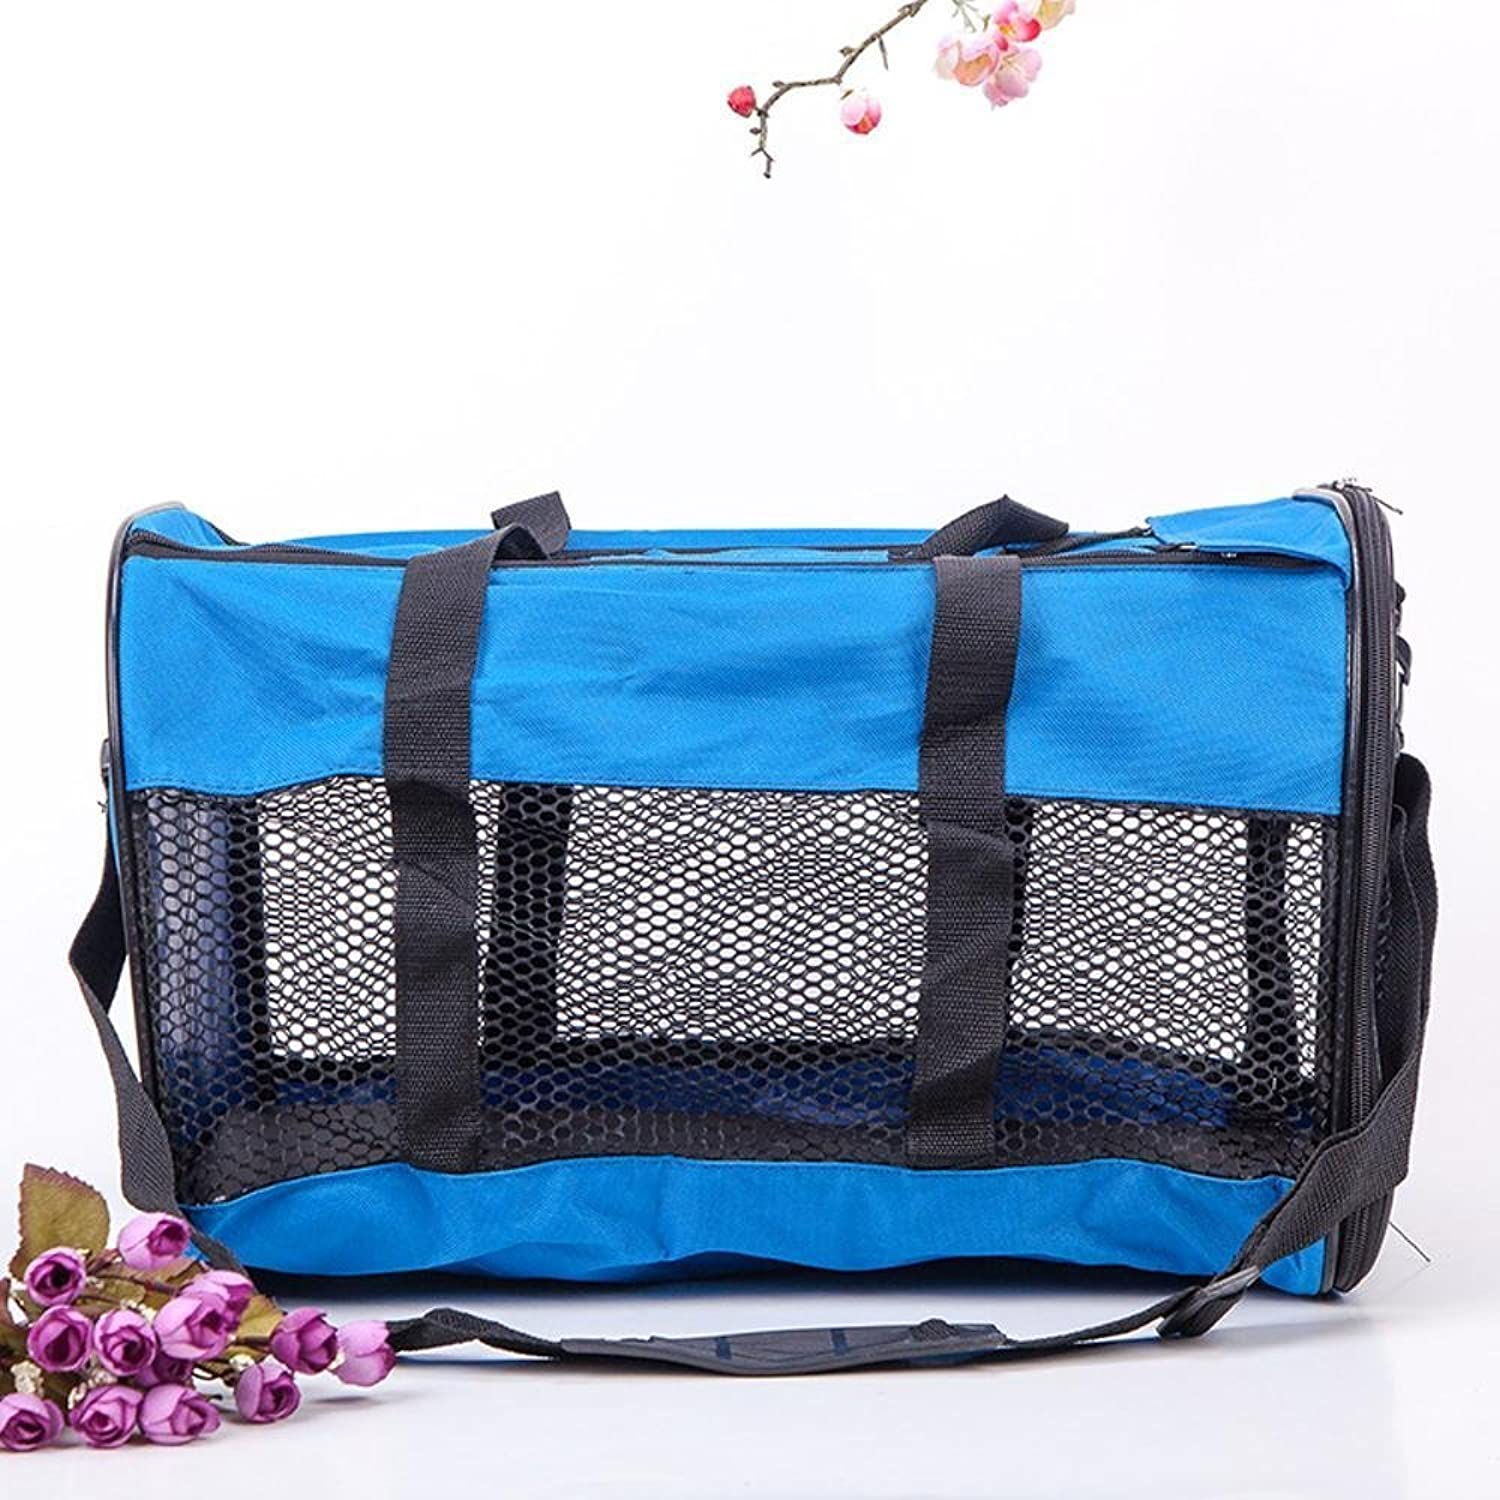 Kaxima Pet Carrier Backpack Go out for a trip hand messenger bag encryption Oxford Bouniron grid cloth 44x30x28cm